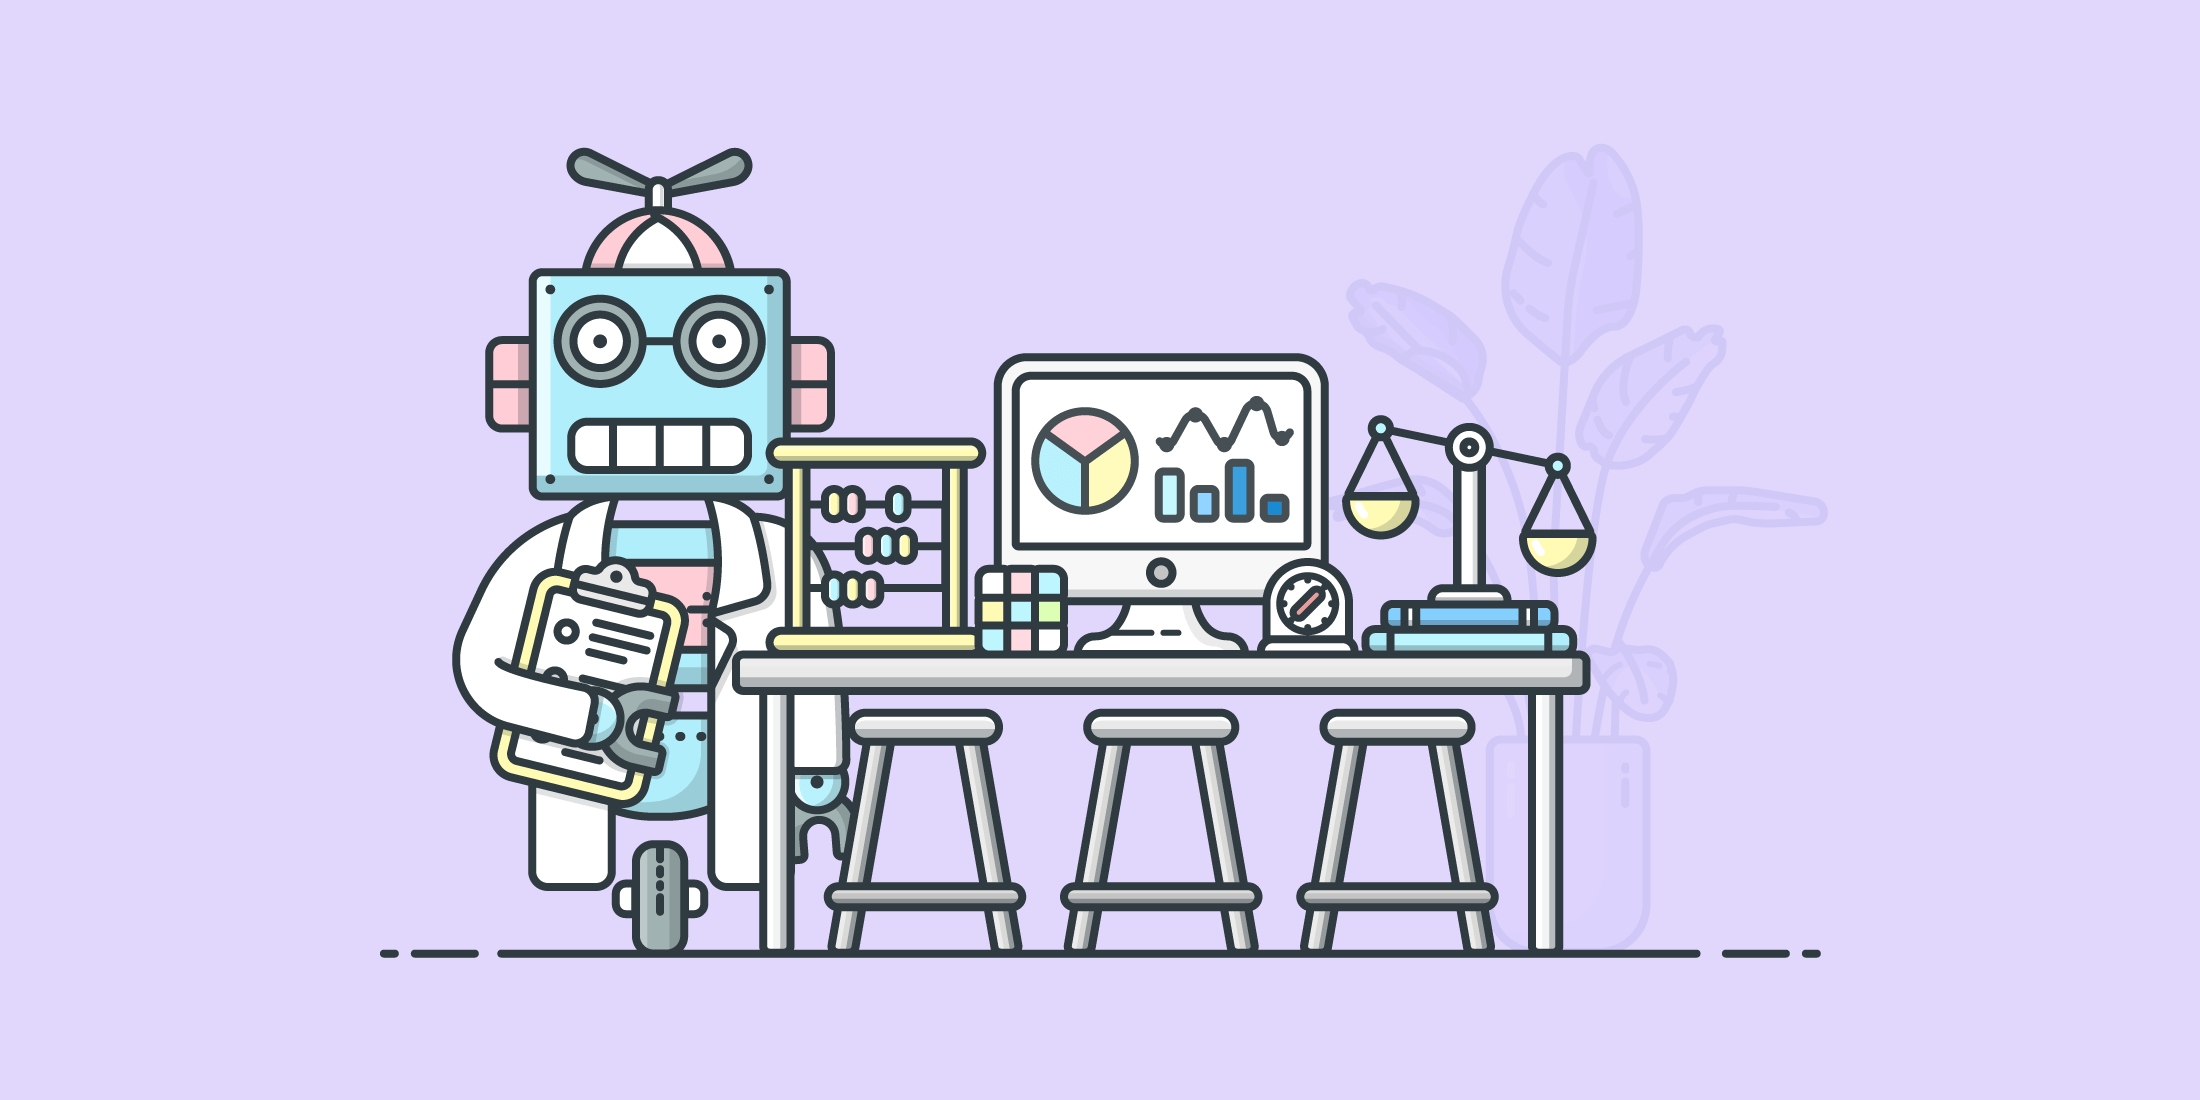 Illustration of a robot with scientific instruments